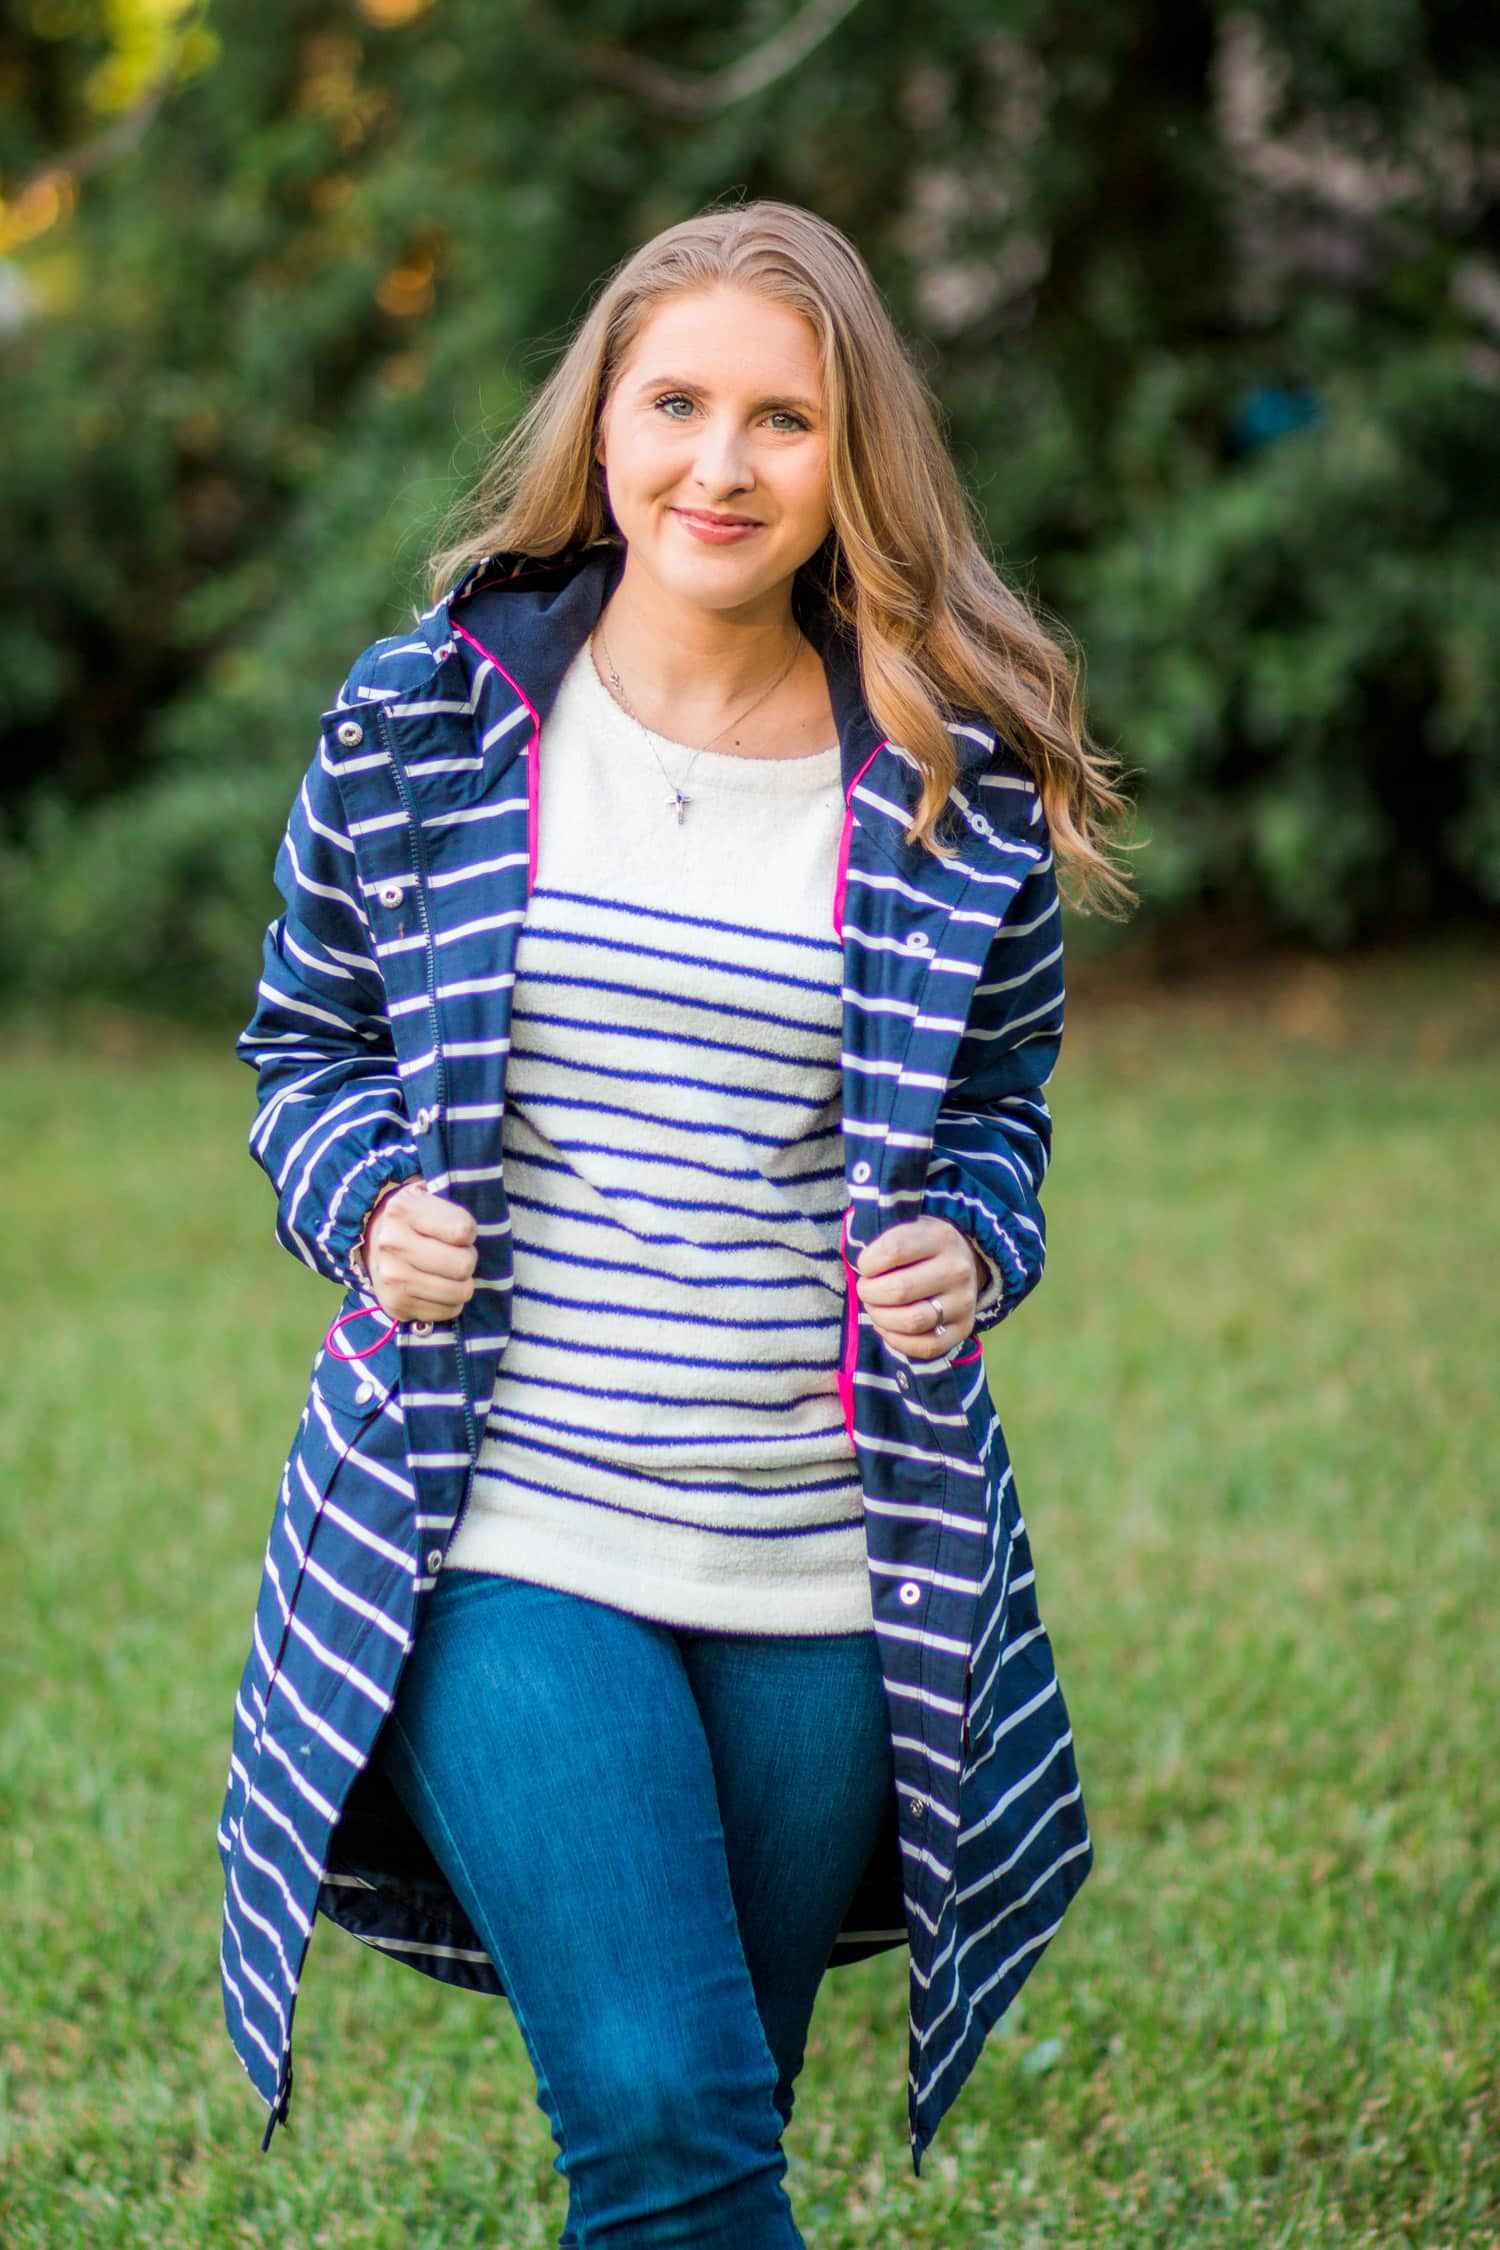 joules-cozy-navy-white-striped-sweater-6595